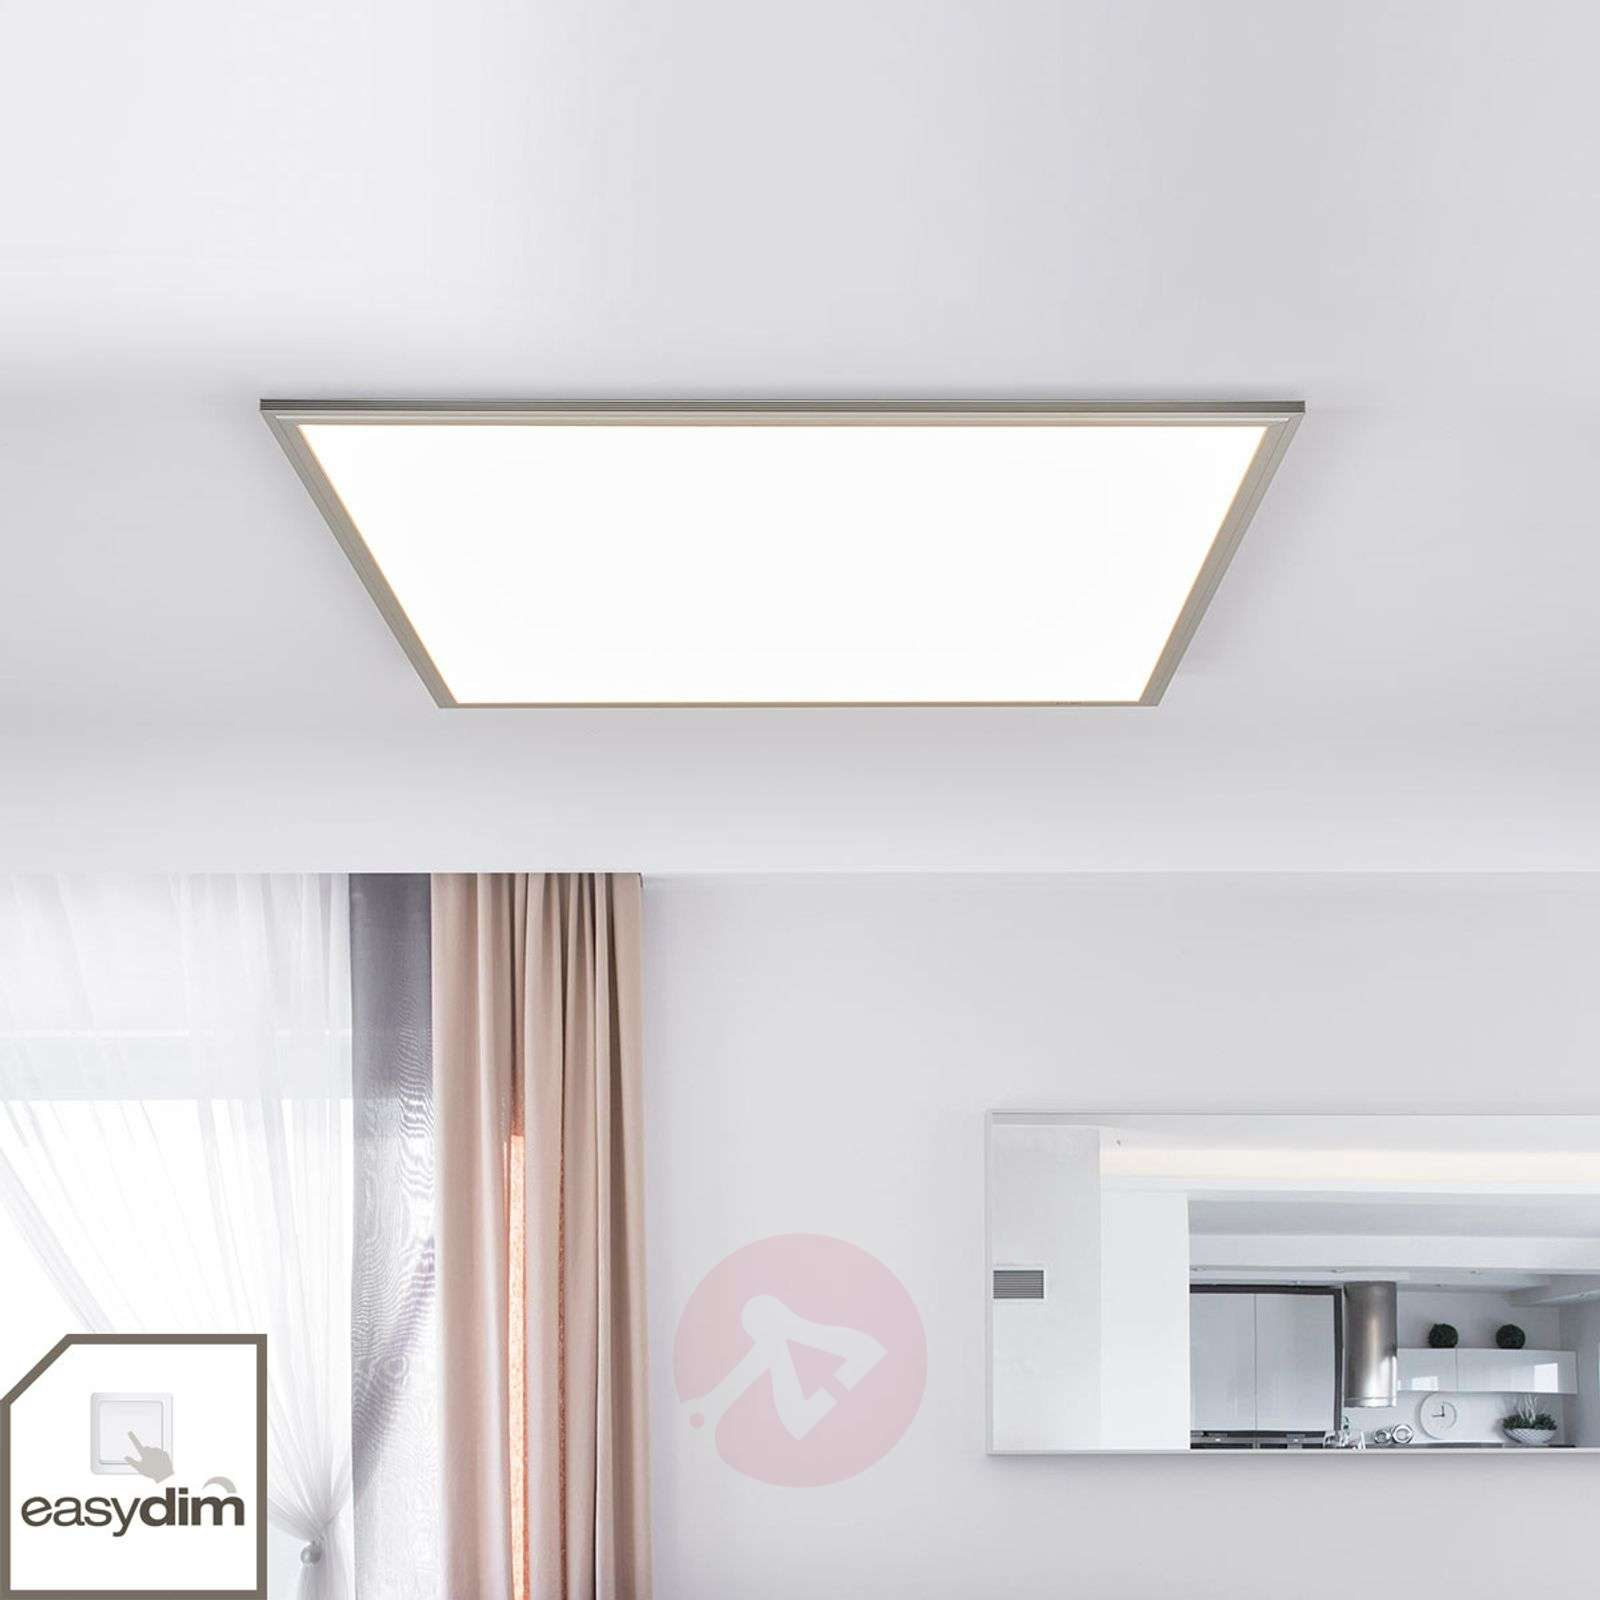 Panel LED Moira atenuable con forma cuadrada-1558076-01